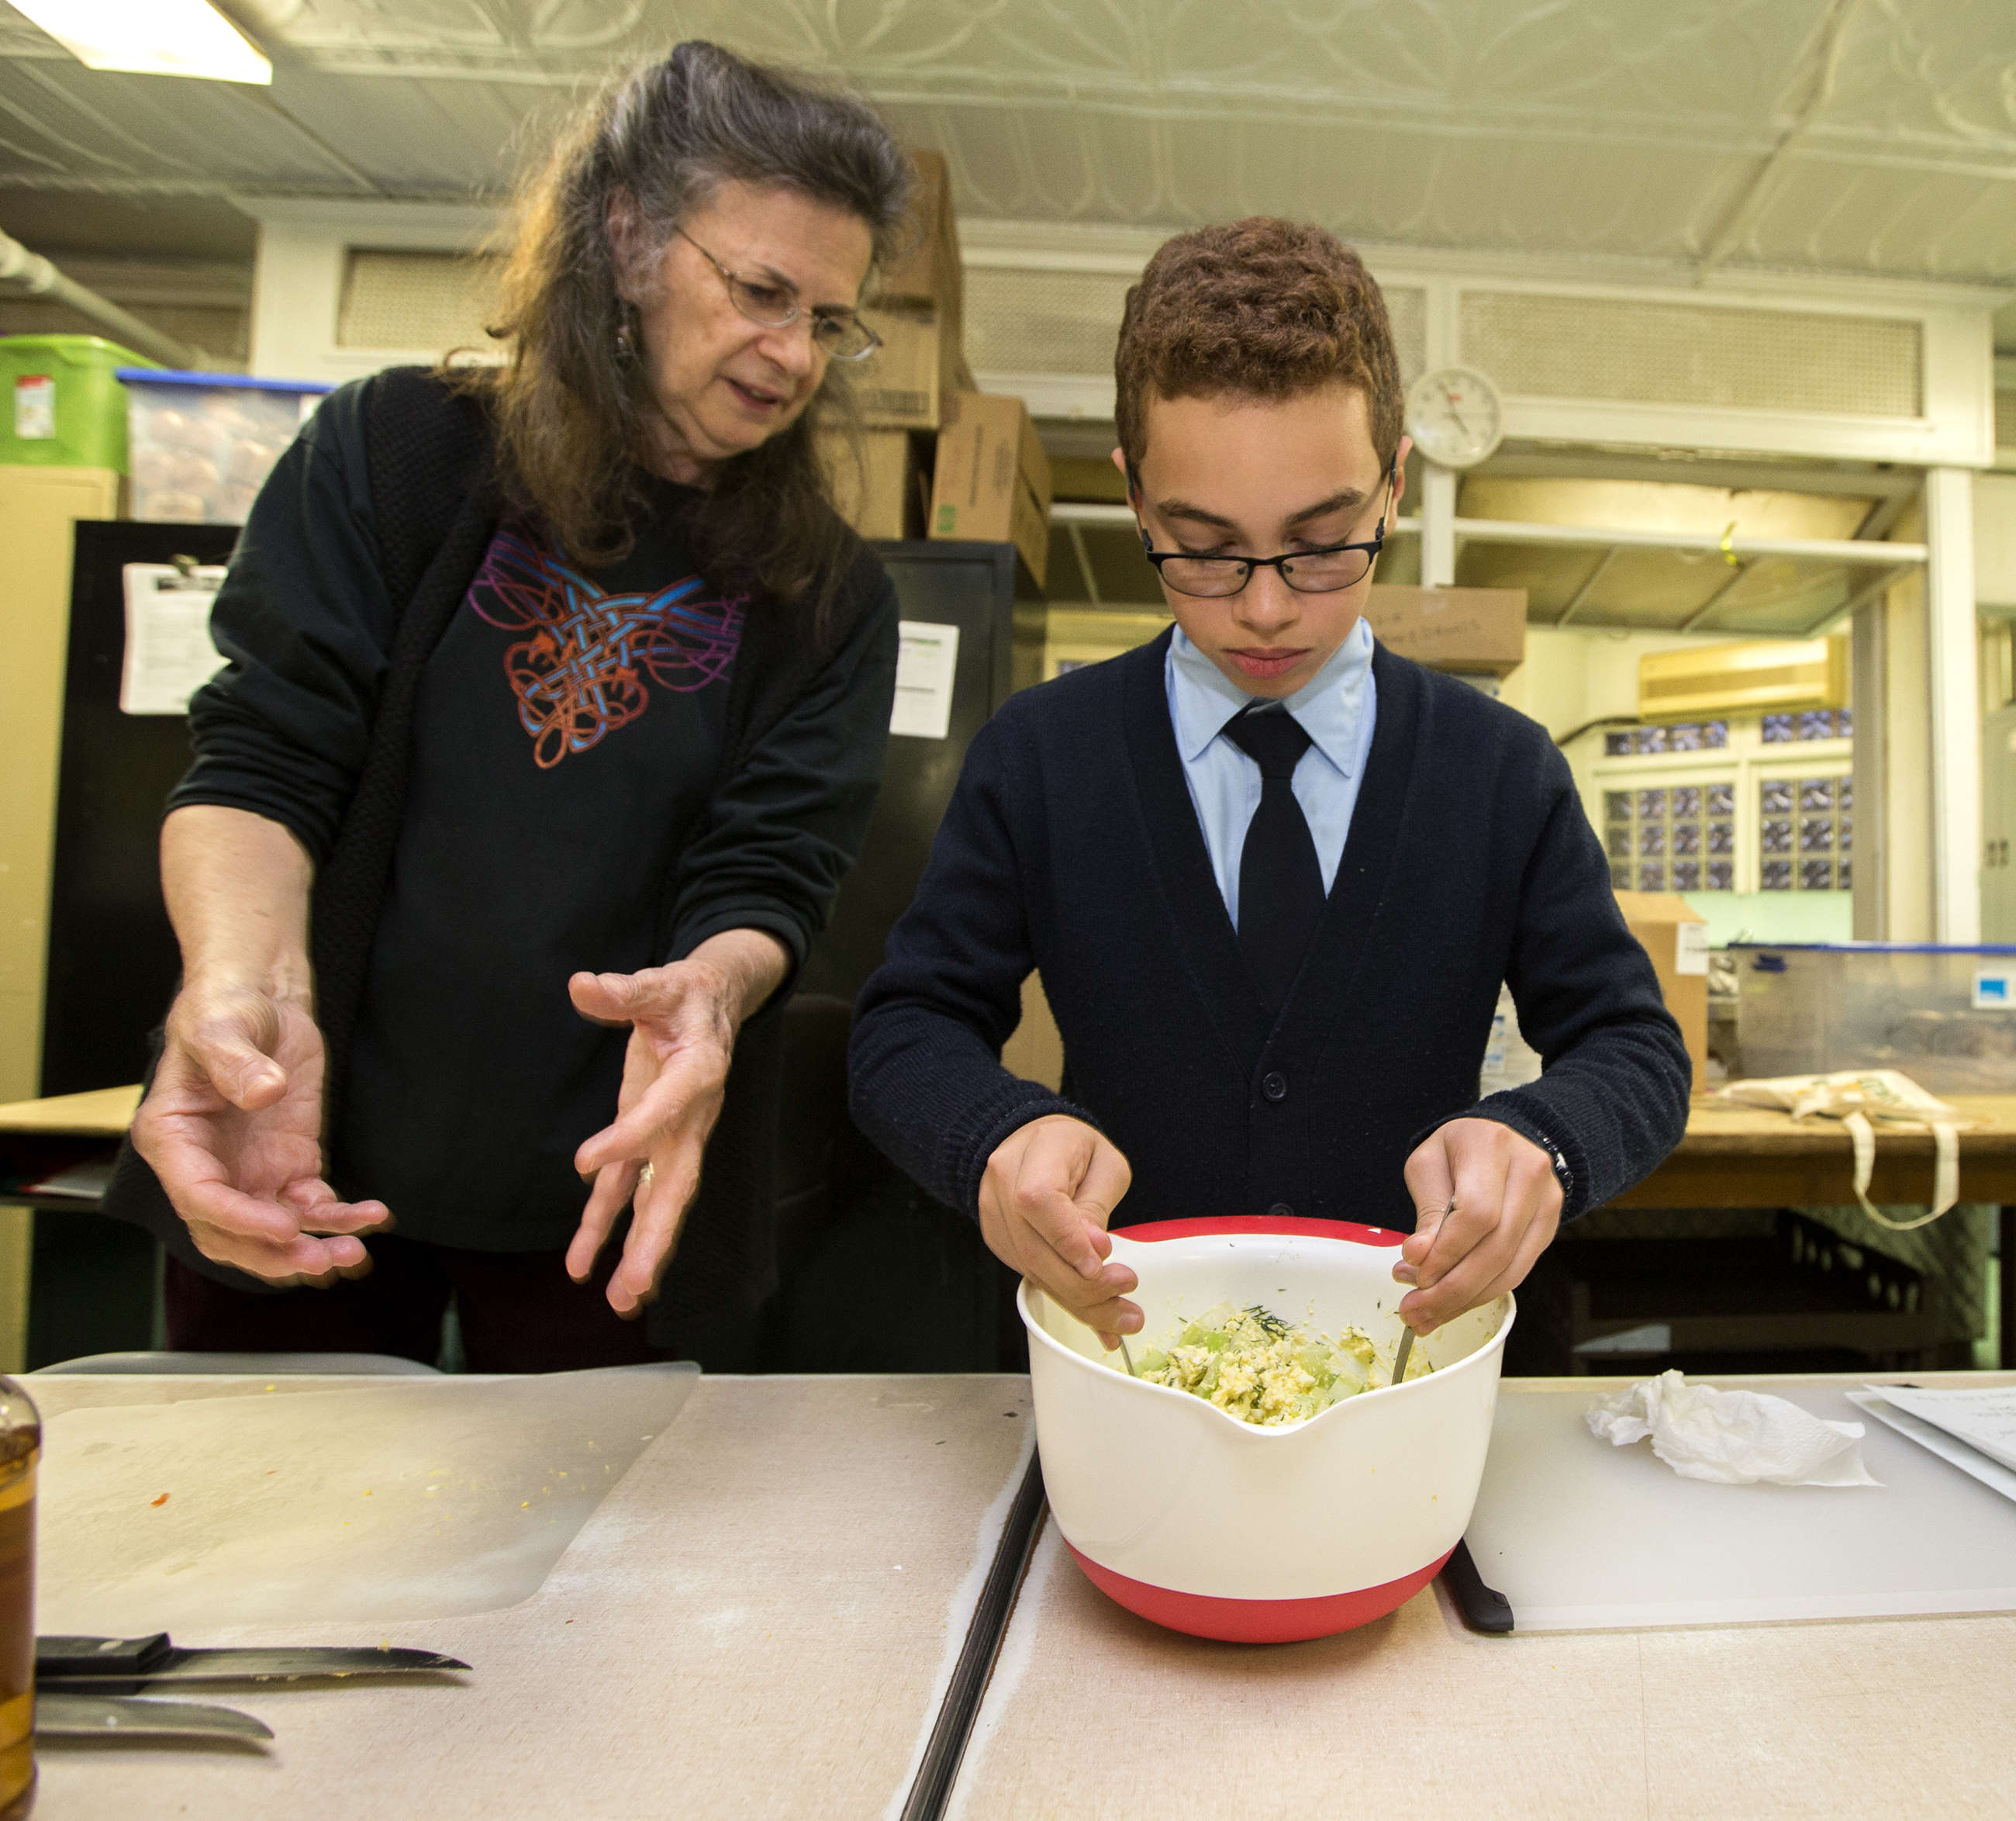 Volunteer Maria Brown, left, instructs Antonio Santiago, right, as he mixes up the egg salad.